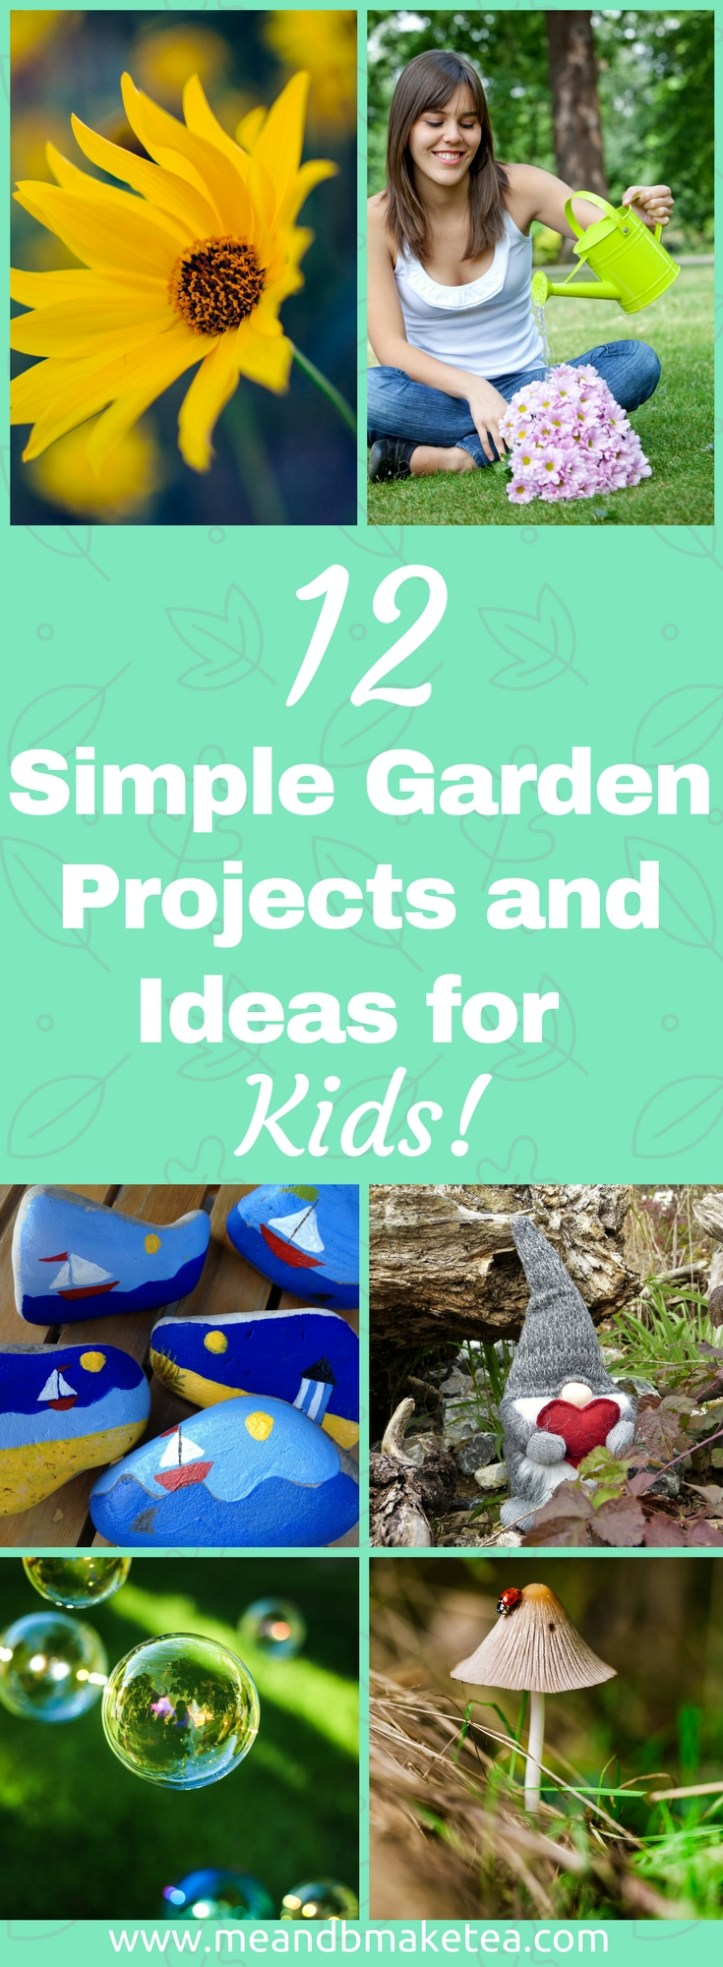 12 Simple Gardening Projects and Ideas for Kids